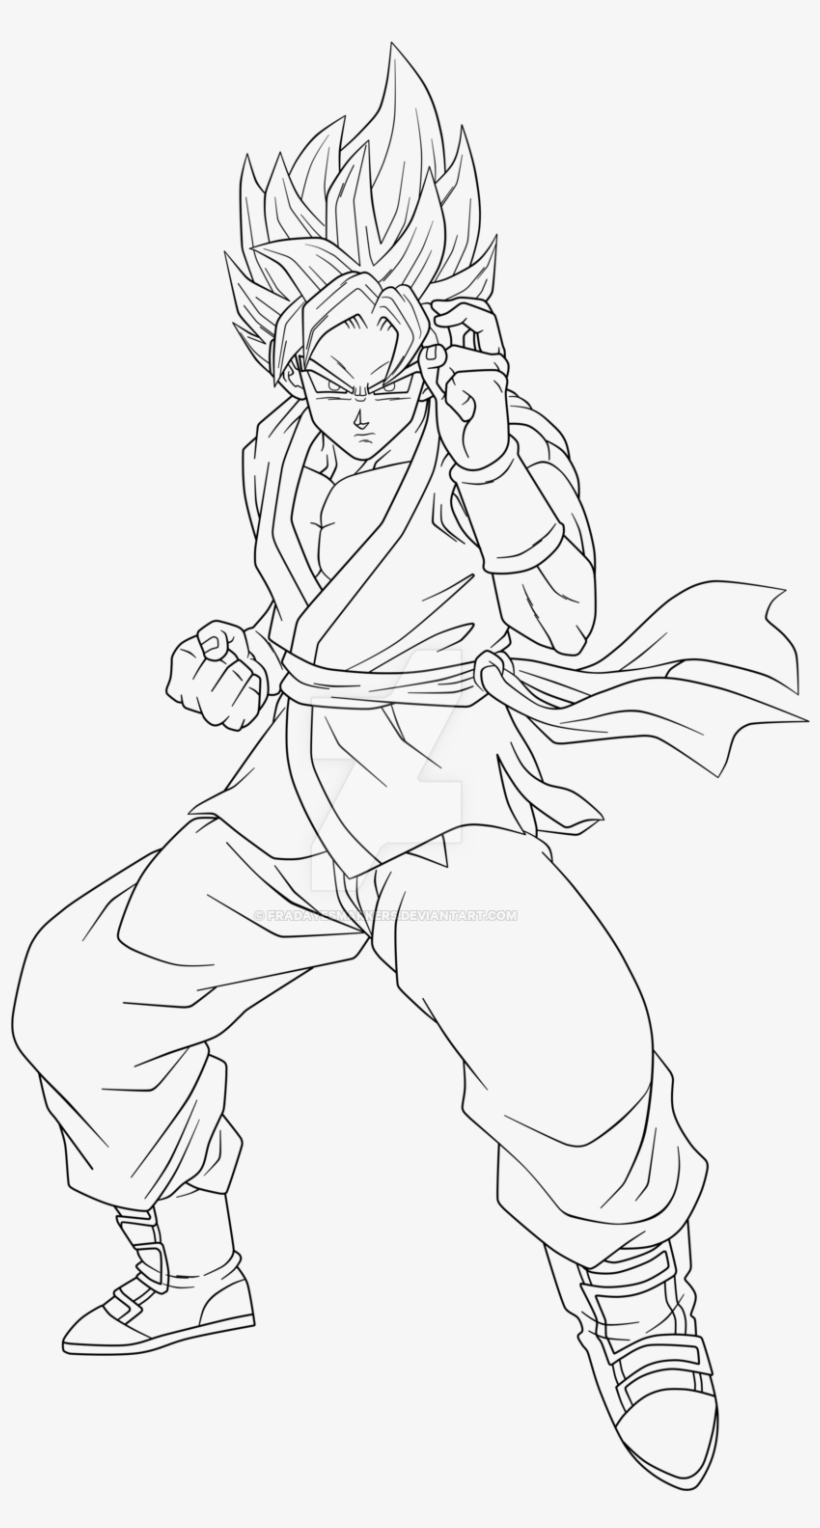 Goku Coloring Pages Ssgss Goku Coloring Pages 3 Jon ...